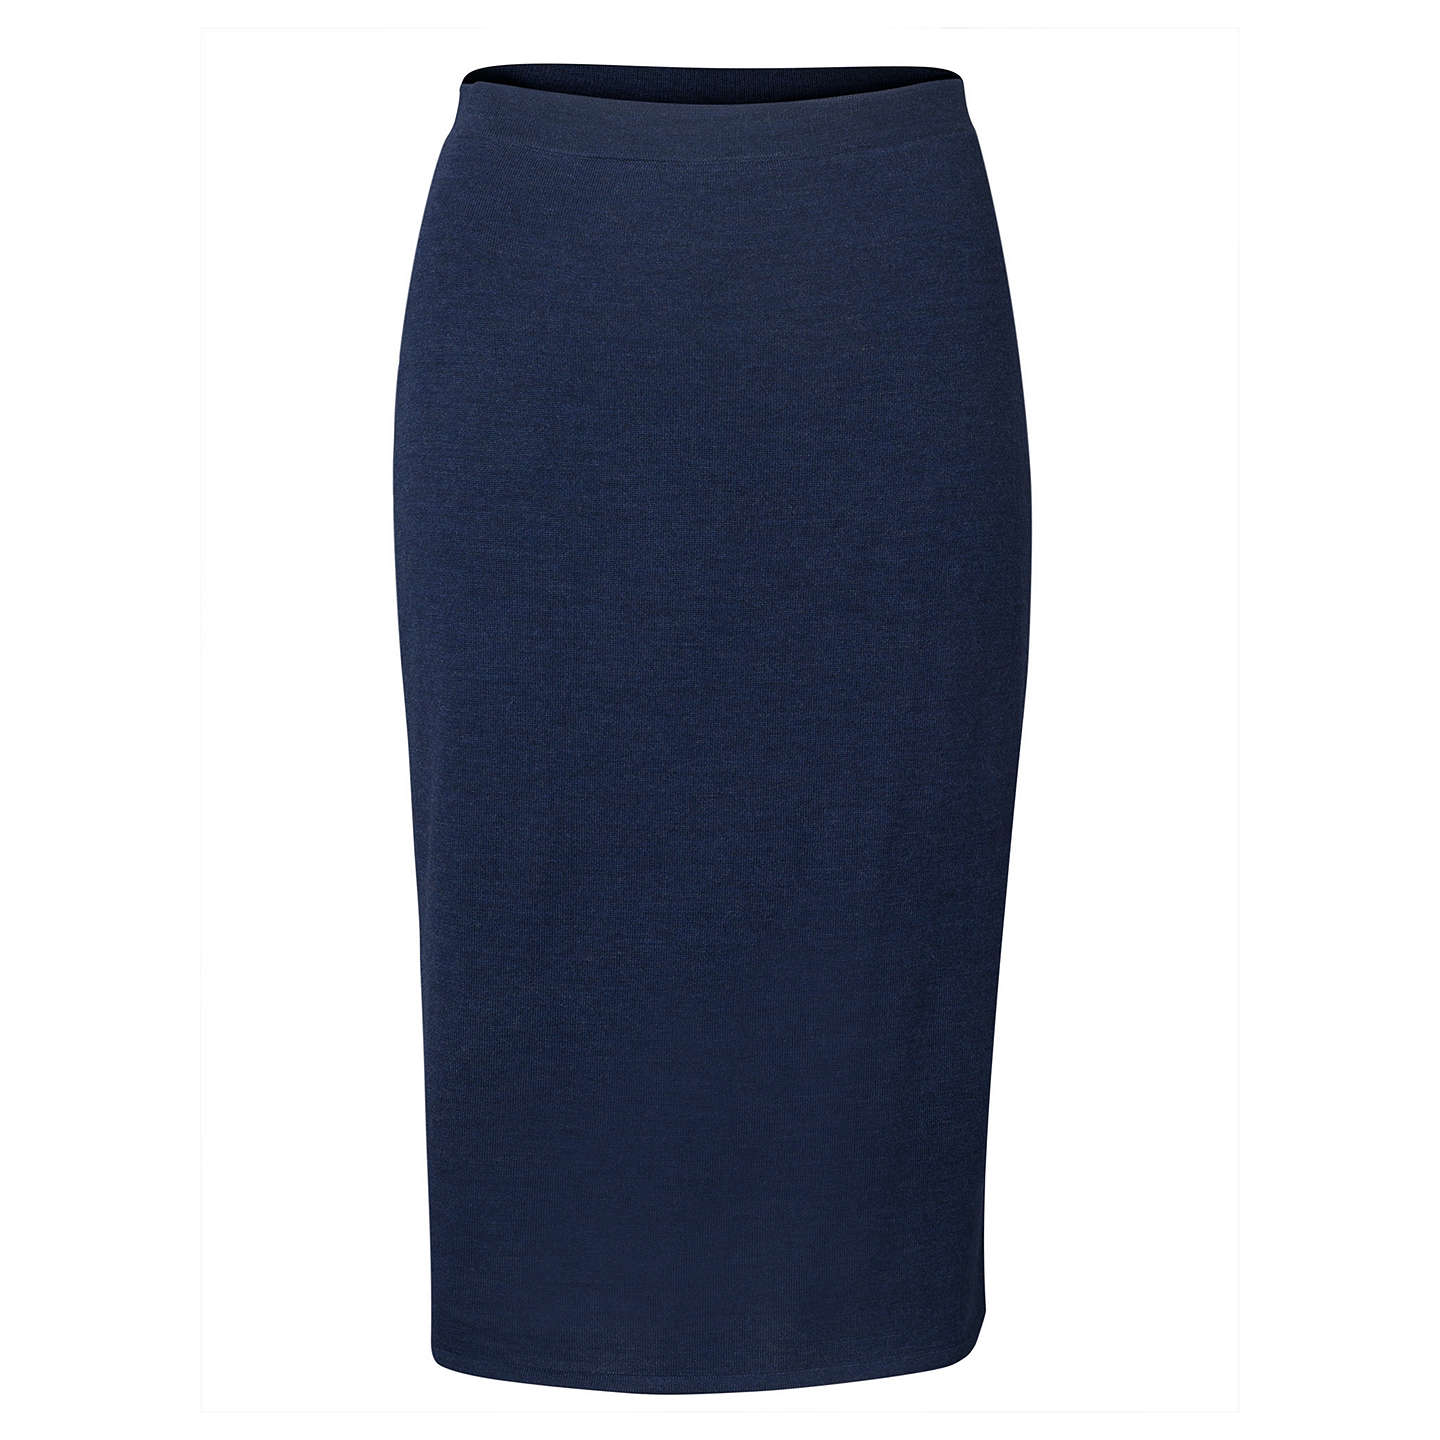 BuyEast Merino Knit Pencil Skirt, Ink, S Online at johnlewis.com